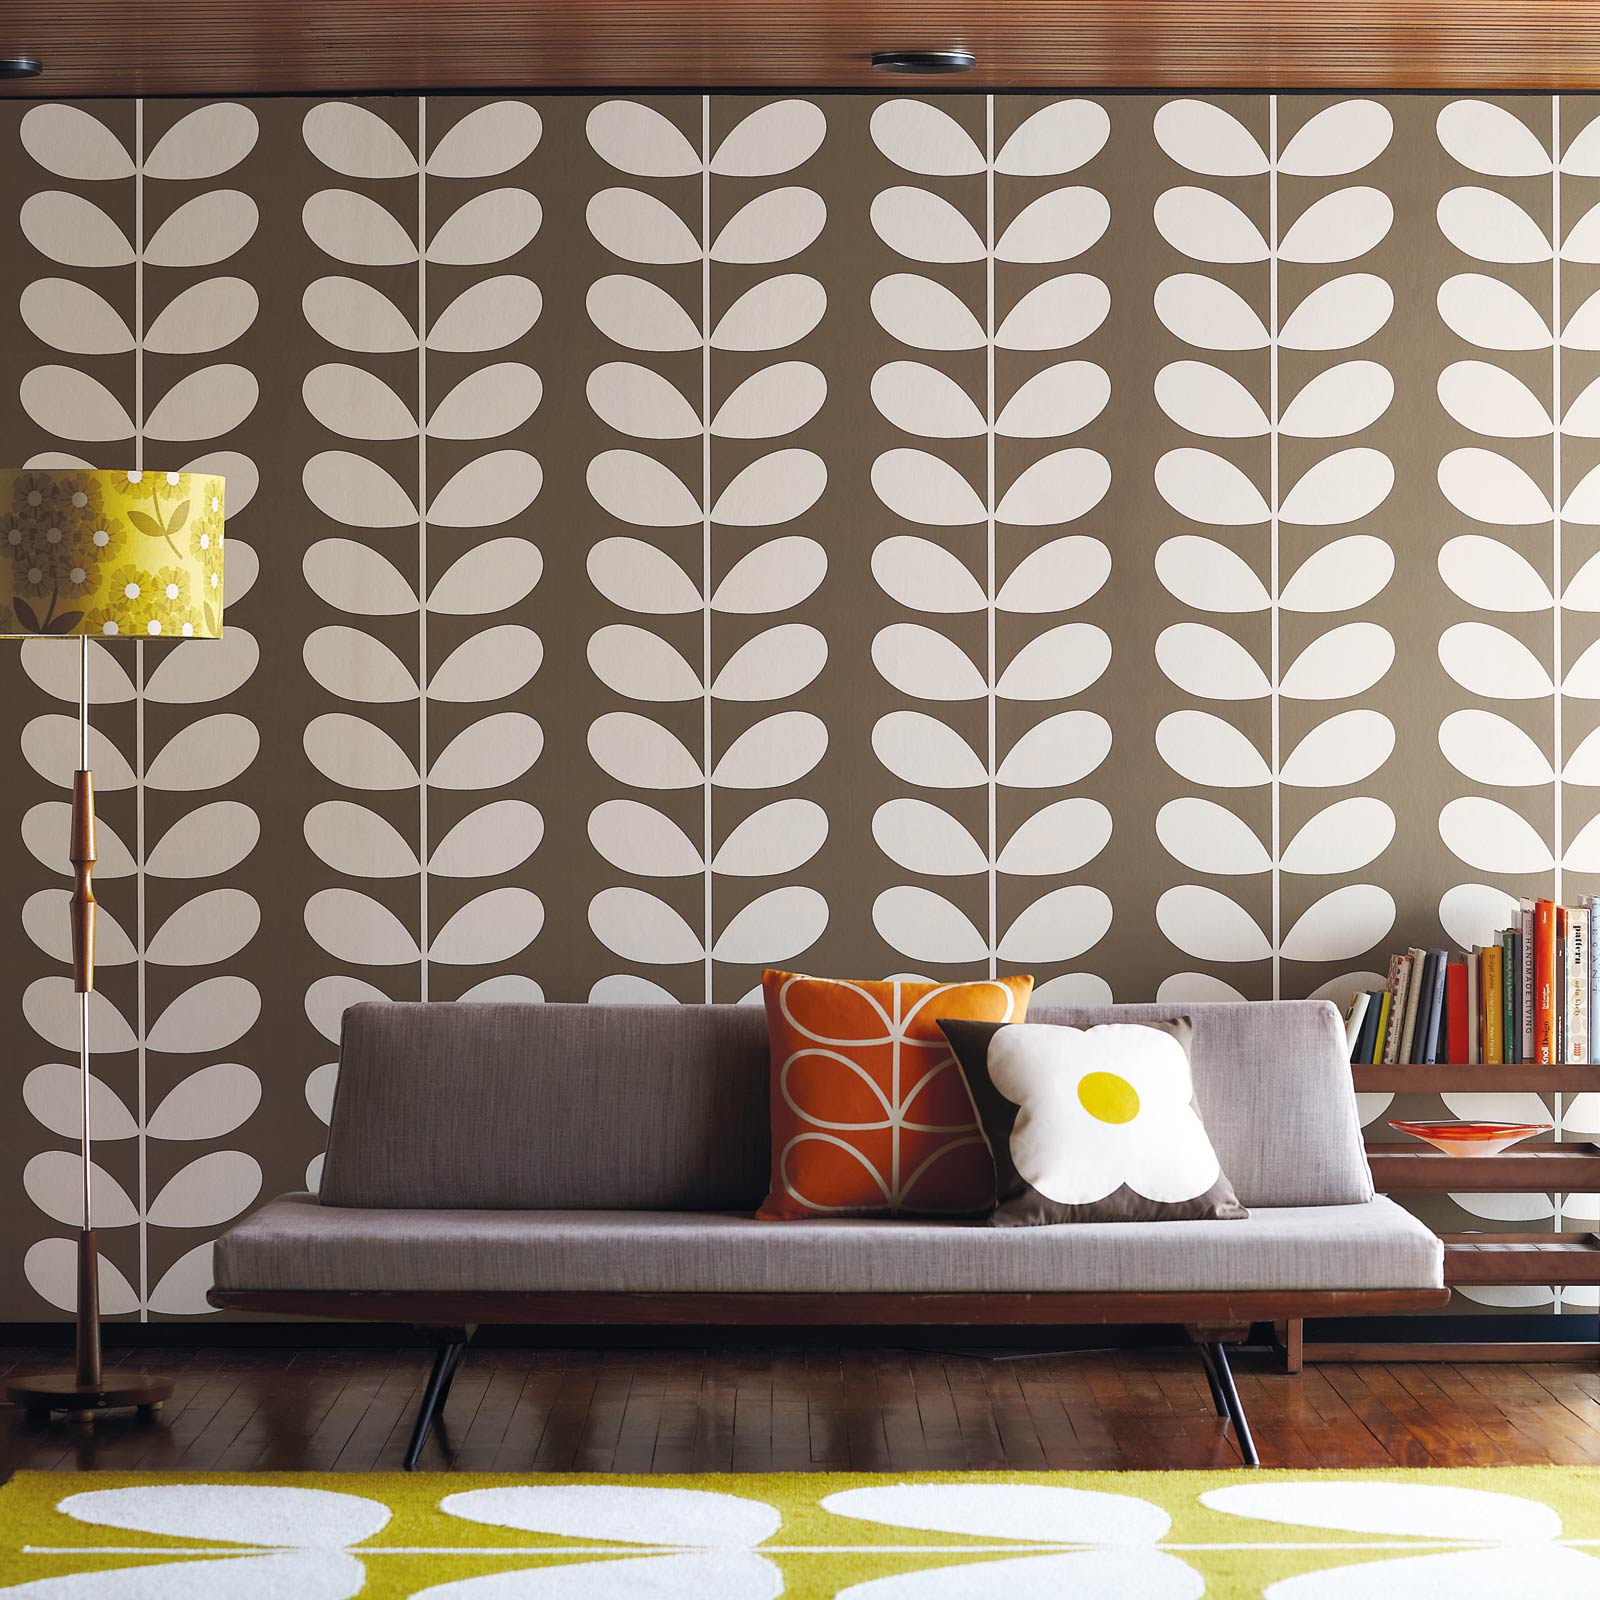 des blogs une th matique wallpaper orla kiely. Black Bedroom Furniture Sets. Home Design Ideas